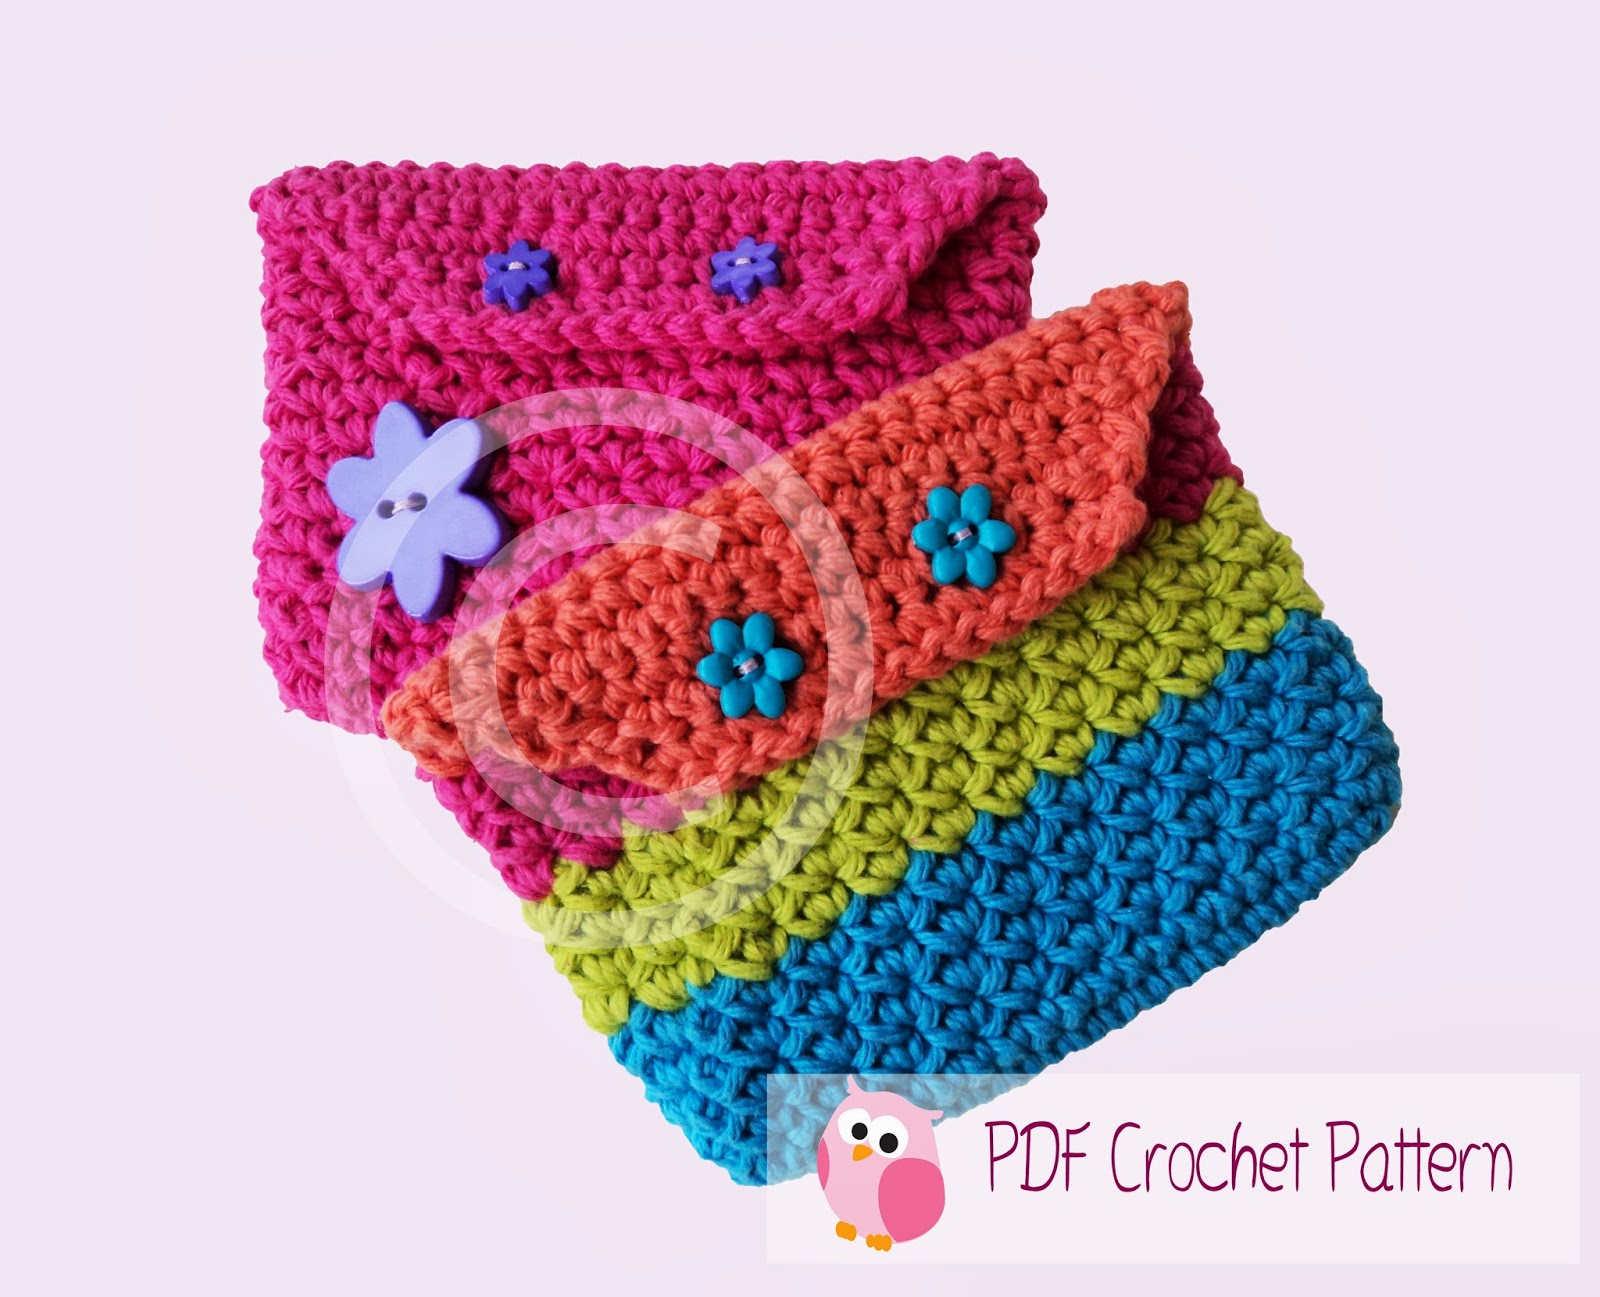 Cute Little Crafts: Crochet: Rainbow Coin Purse